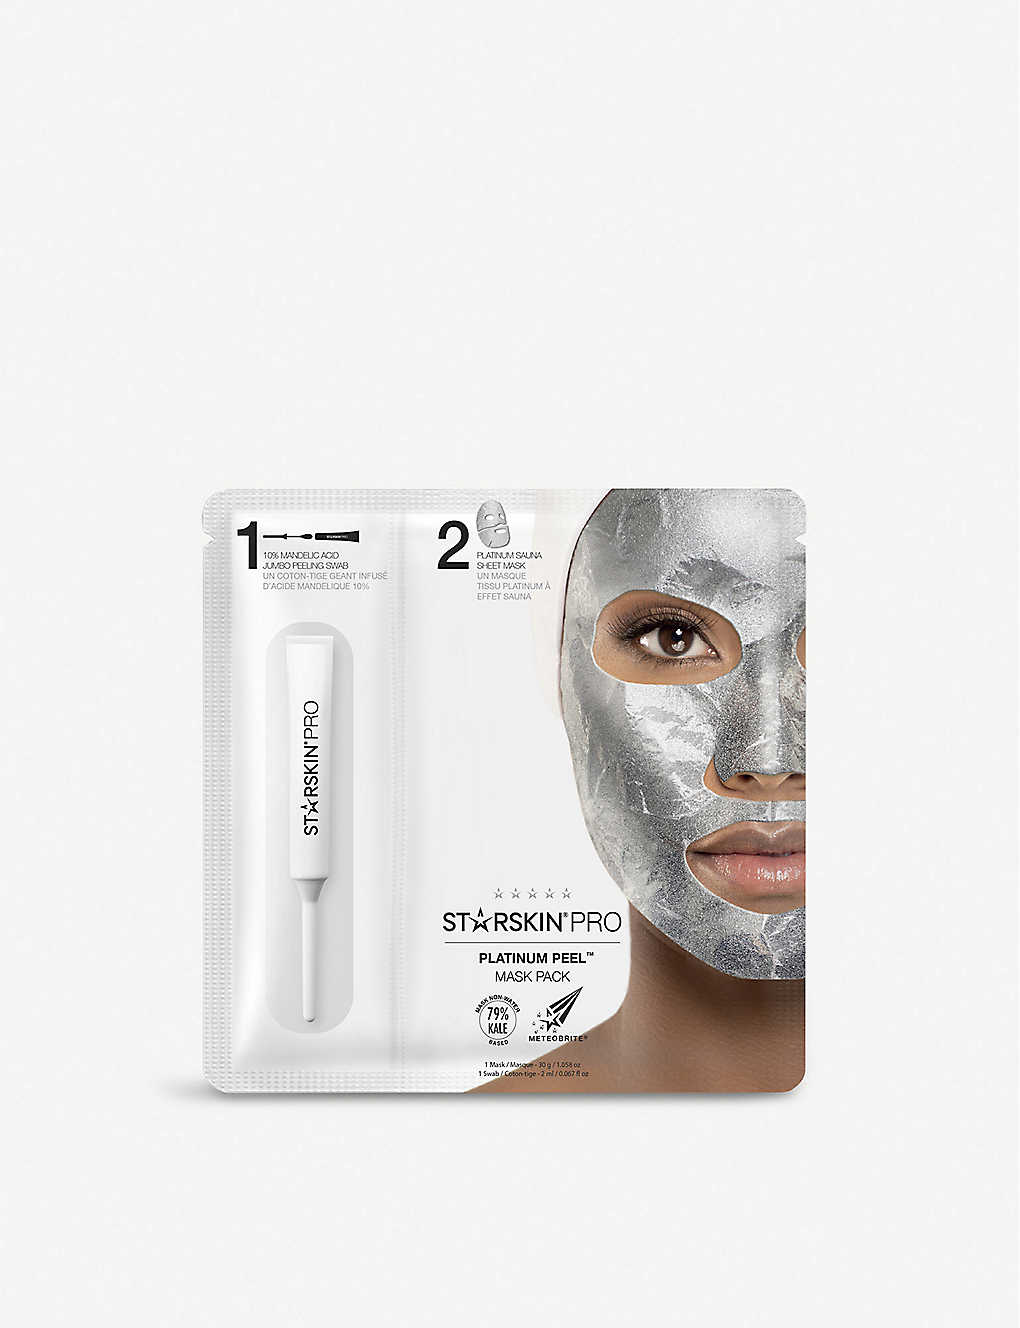 STARSKIN: Platinum Peel Foil Sheet Mask Pack